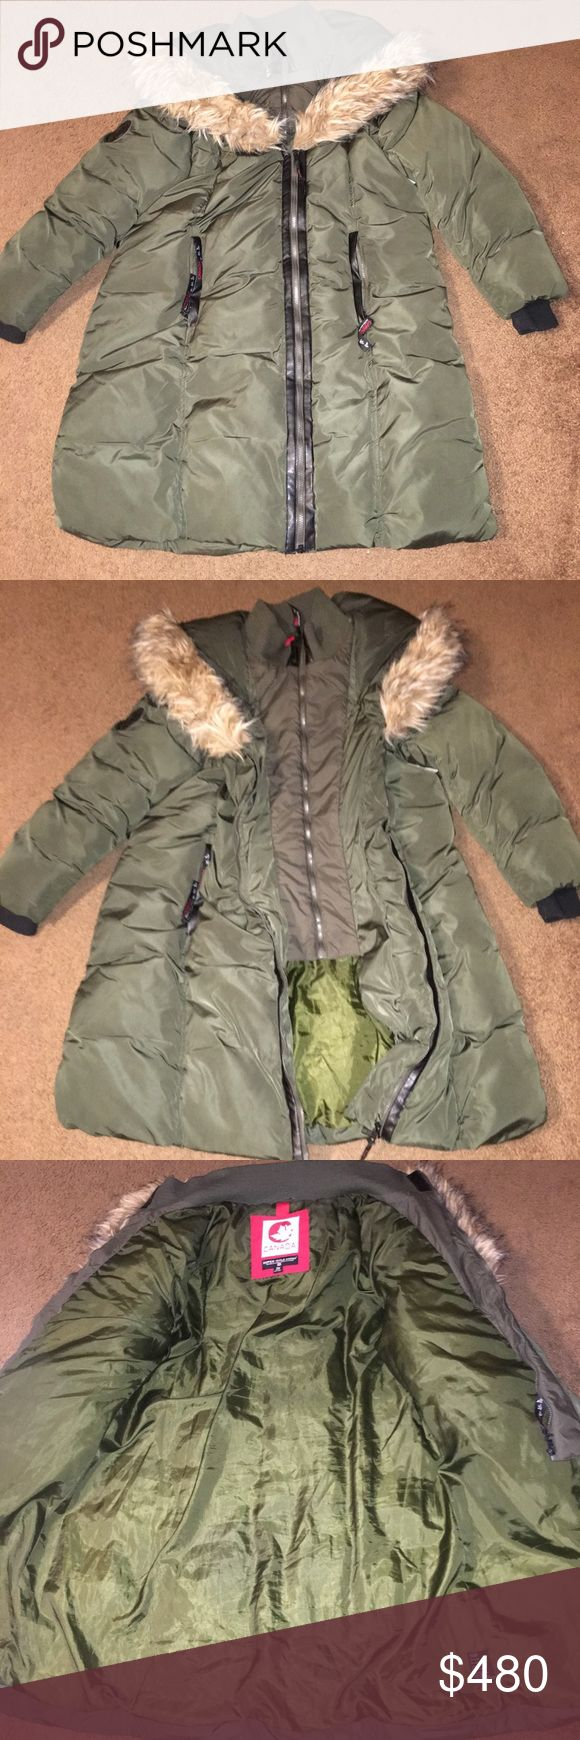 Canadian Goose Down Jacket Like New! Got as a gift and wish it fit! It has 2 separate zip up parts for extra warmth! Canada Goose Jackets & Coats